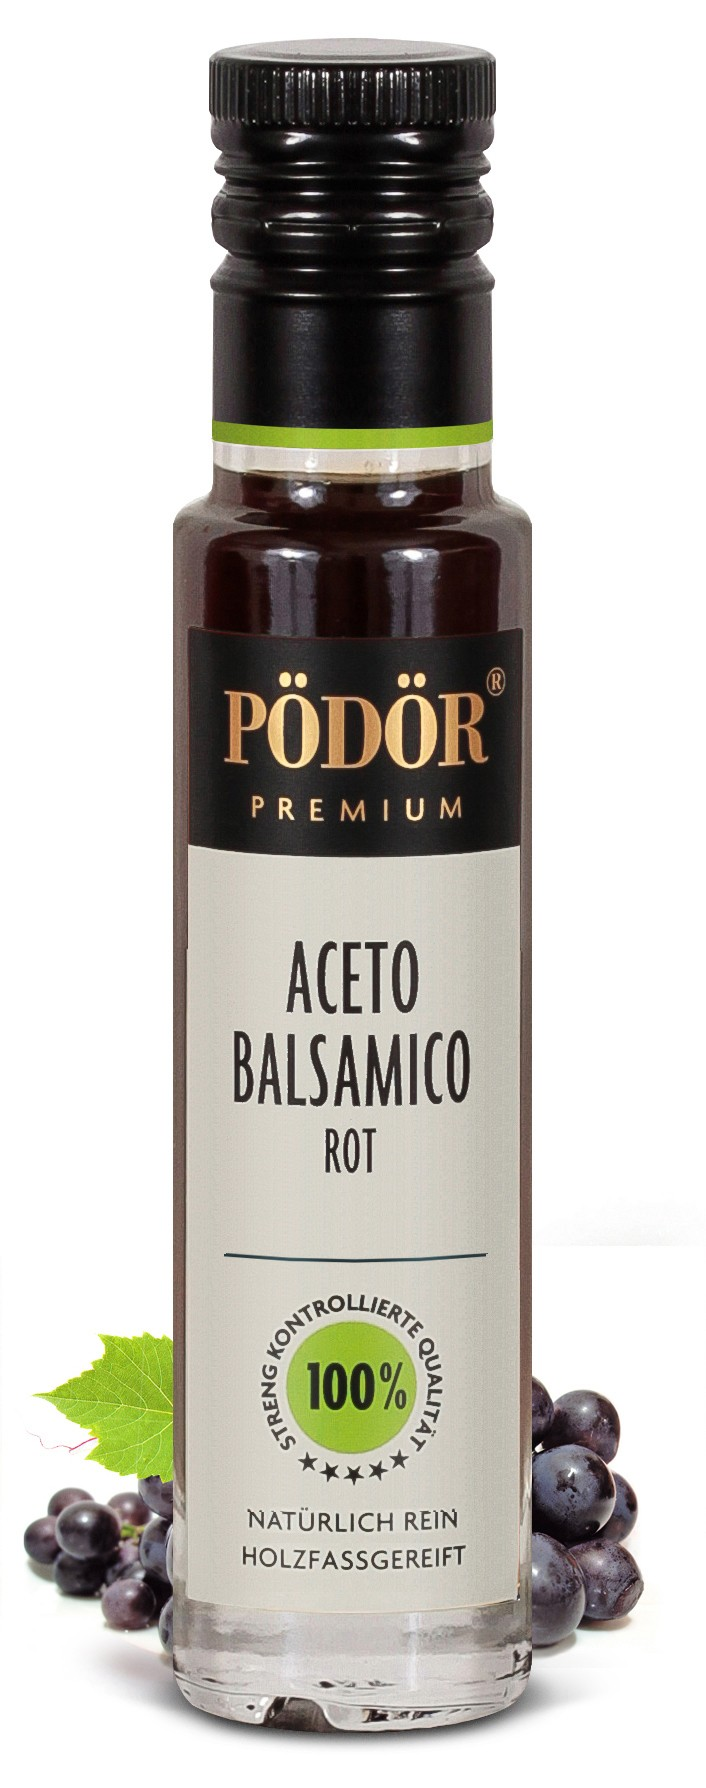 Aceto Balsamico Rot